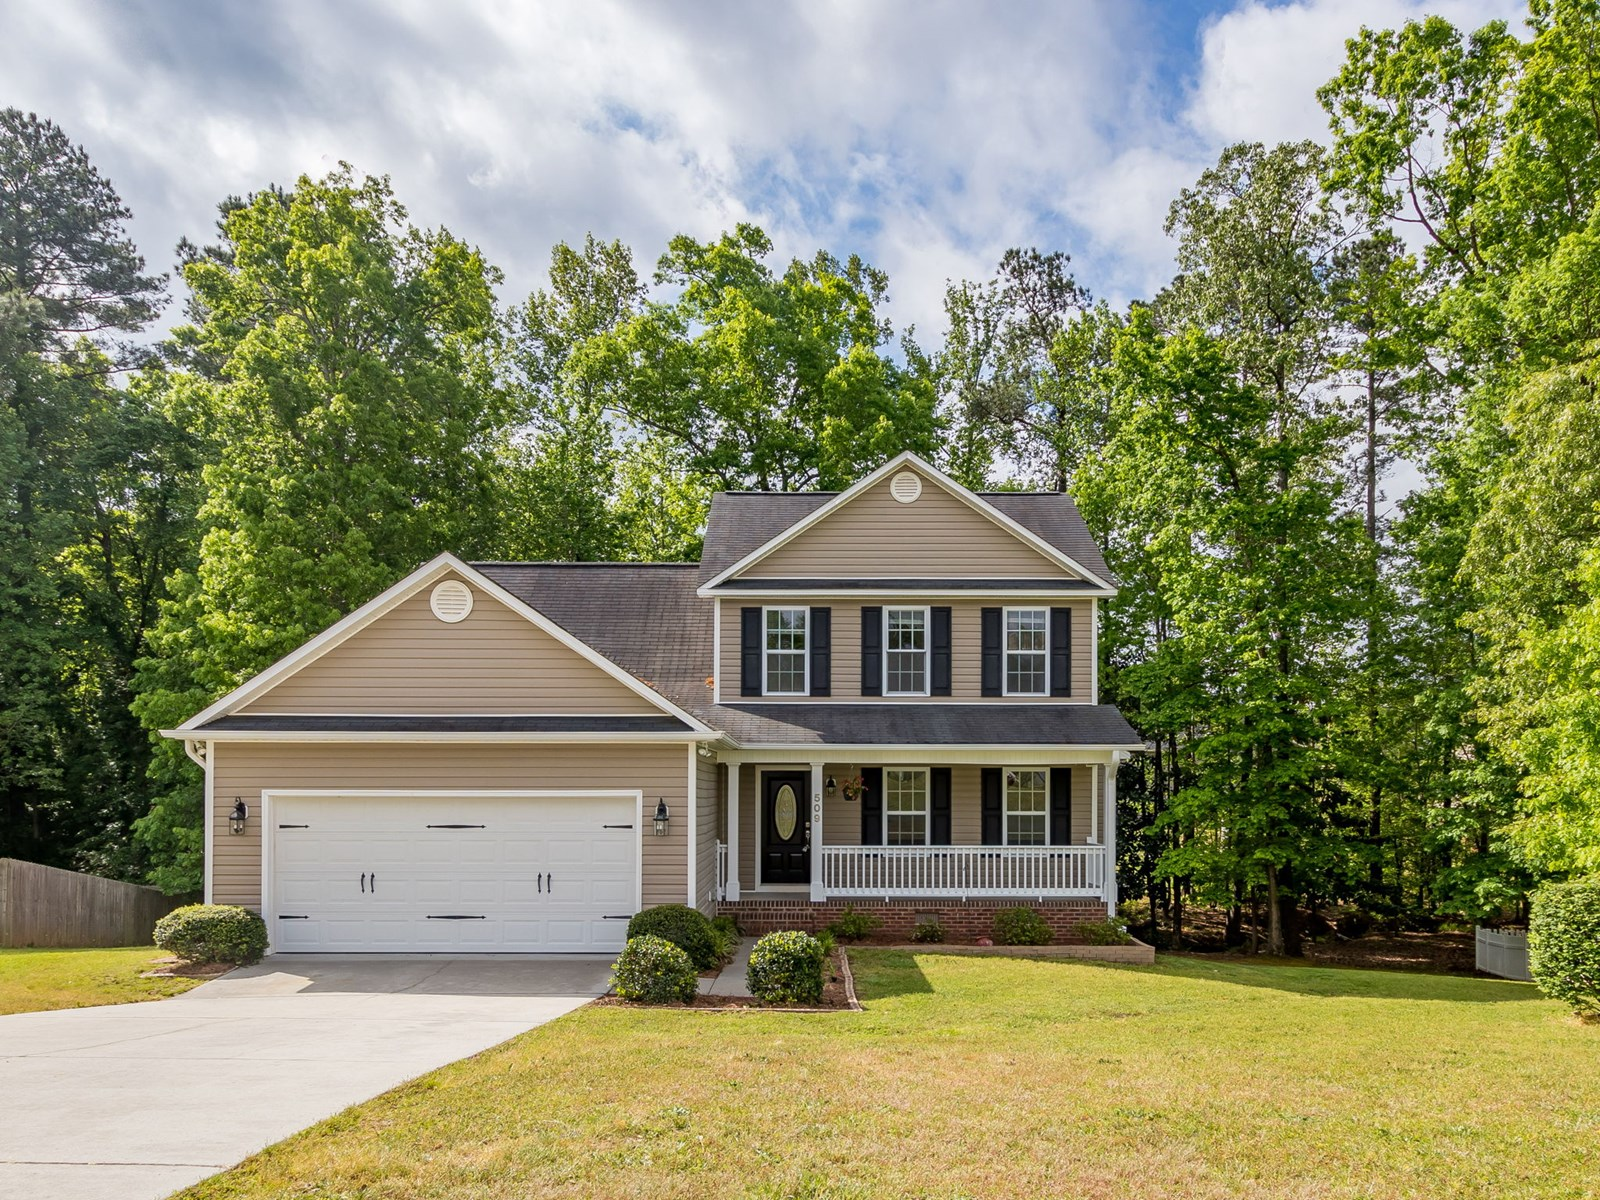 4BR, 2.5BA Home for Sale in Sanford's Nottingham Subdivision